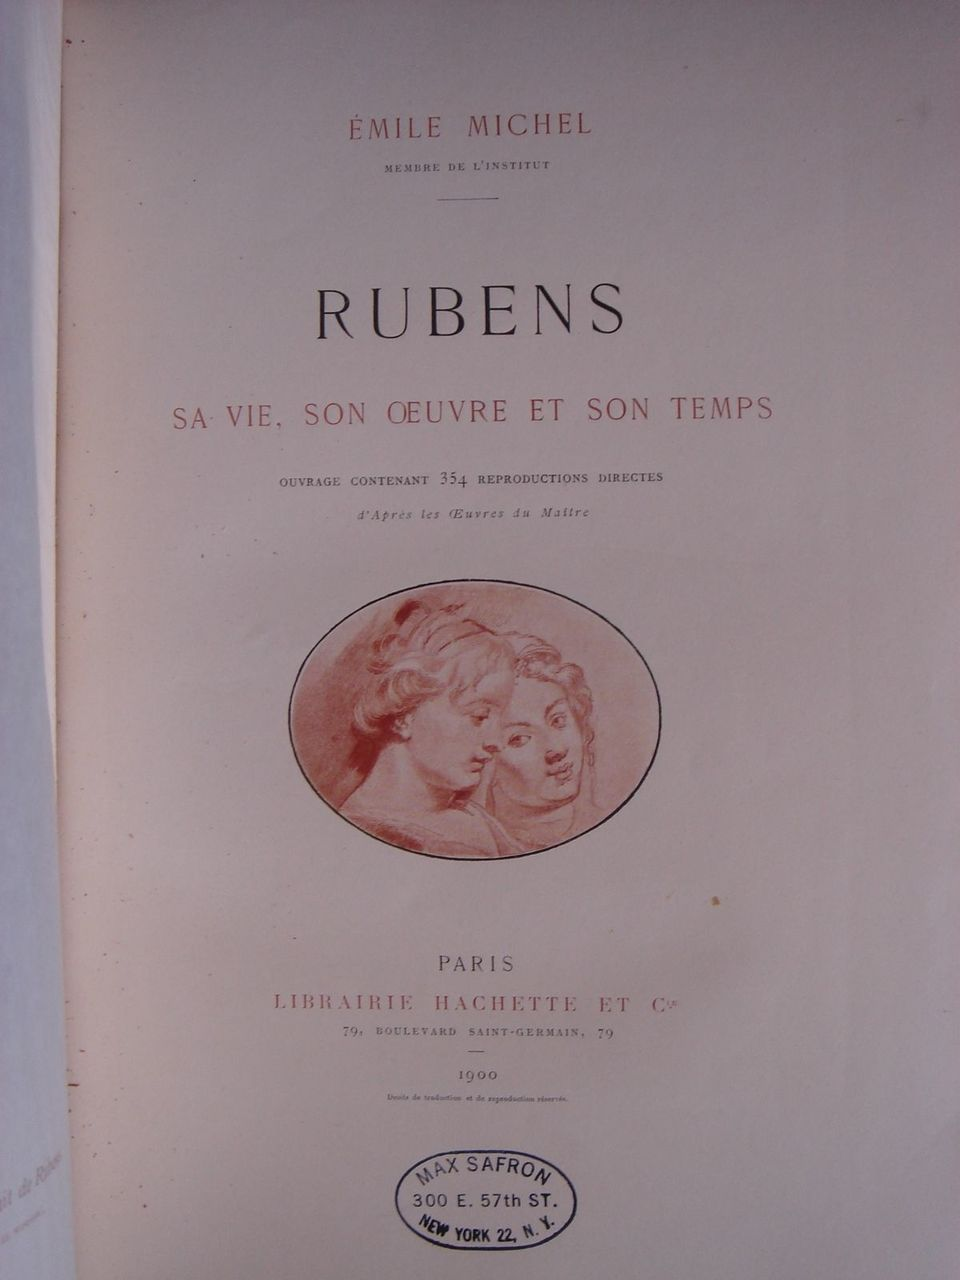 RUBENS SA VIE SON OEUVRE ET SON TEMPS 1900 Emile Michel Paris Illustrated Plates